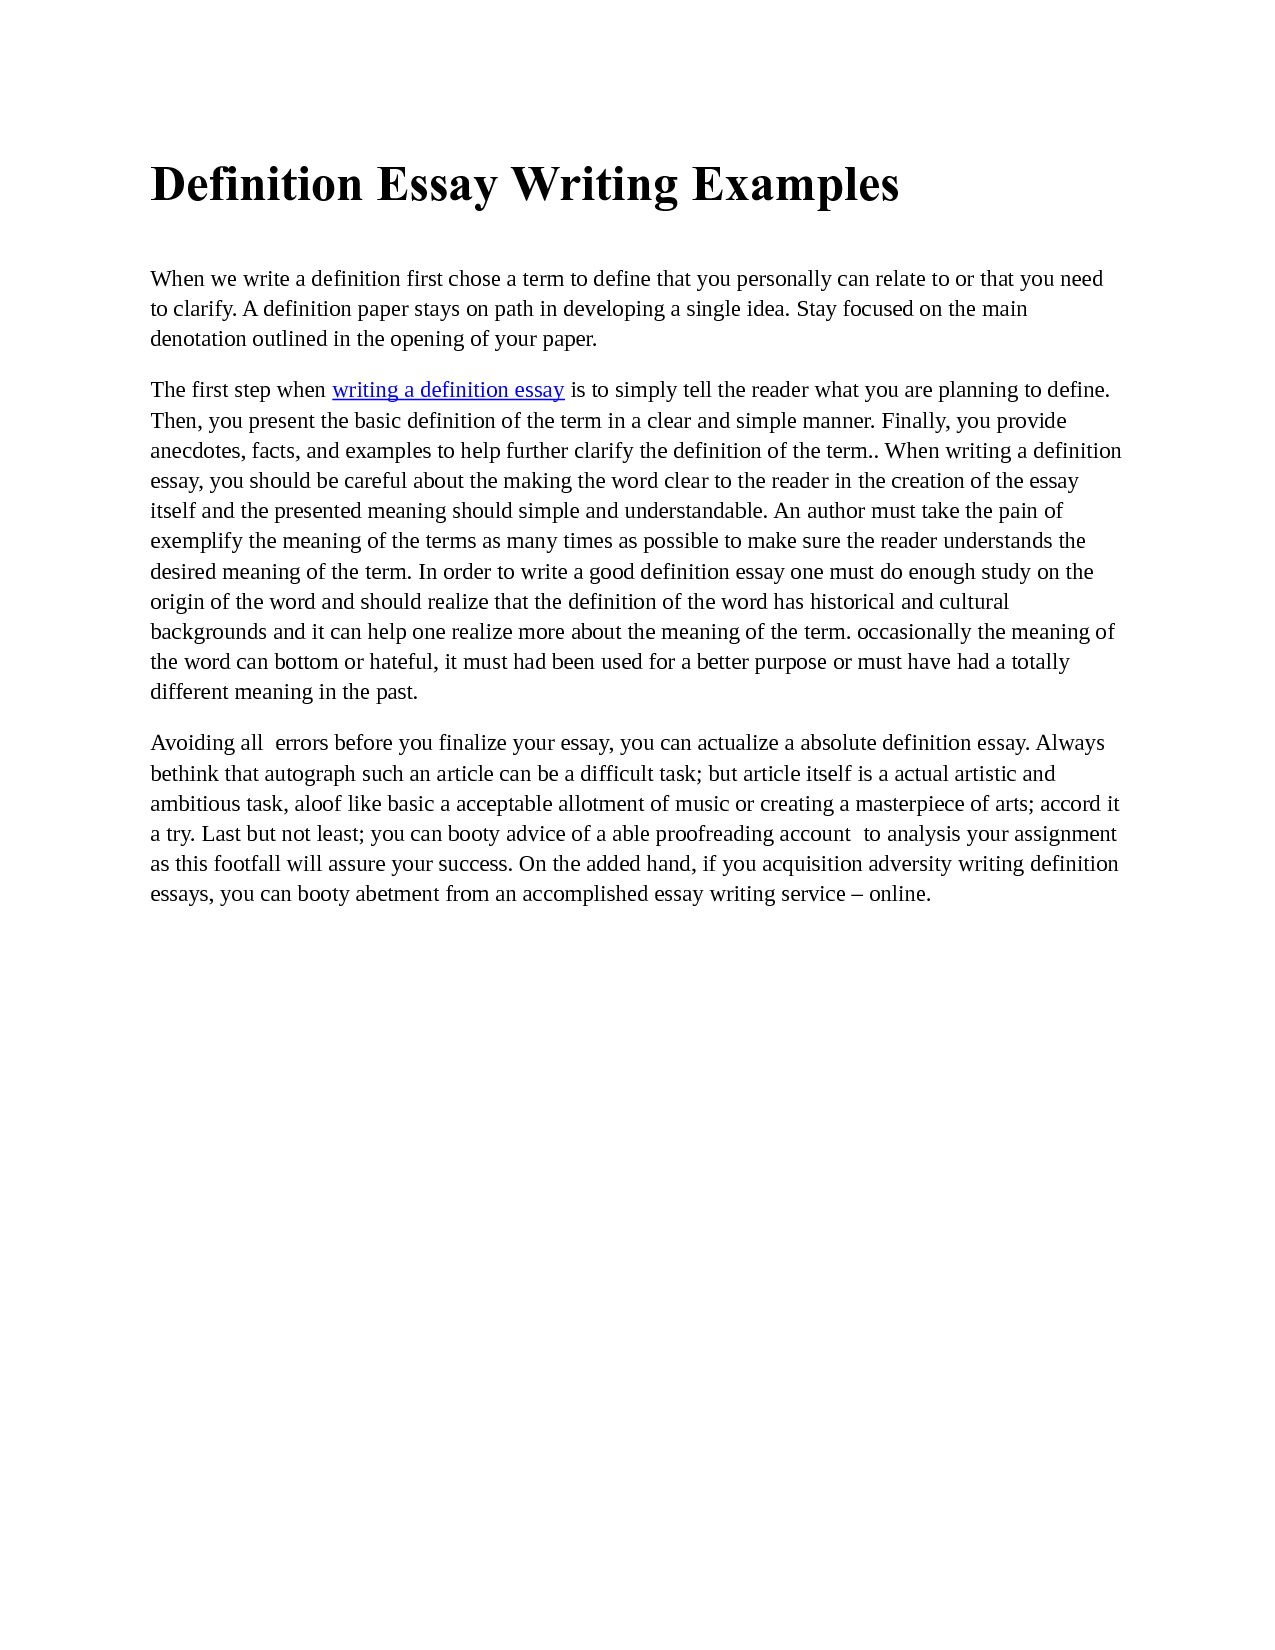 Custom admissions essay plus